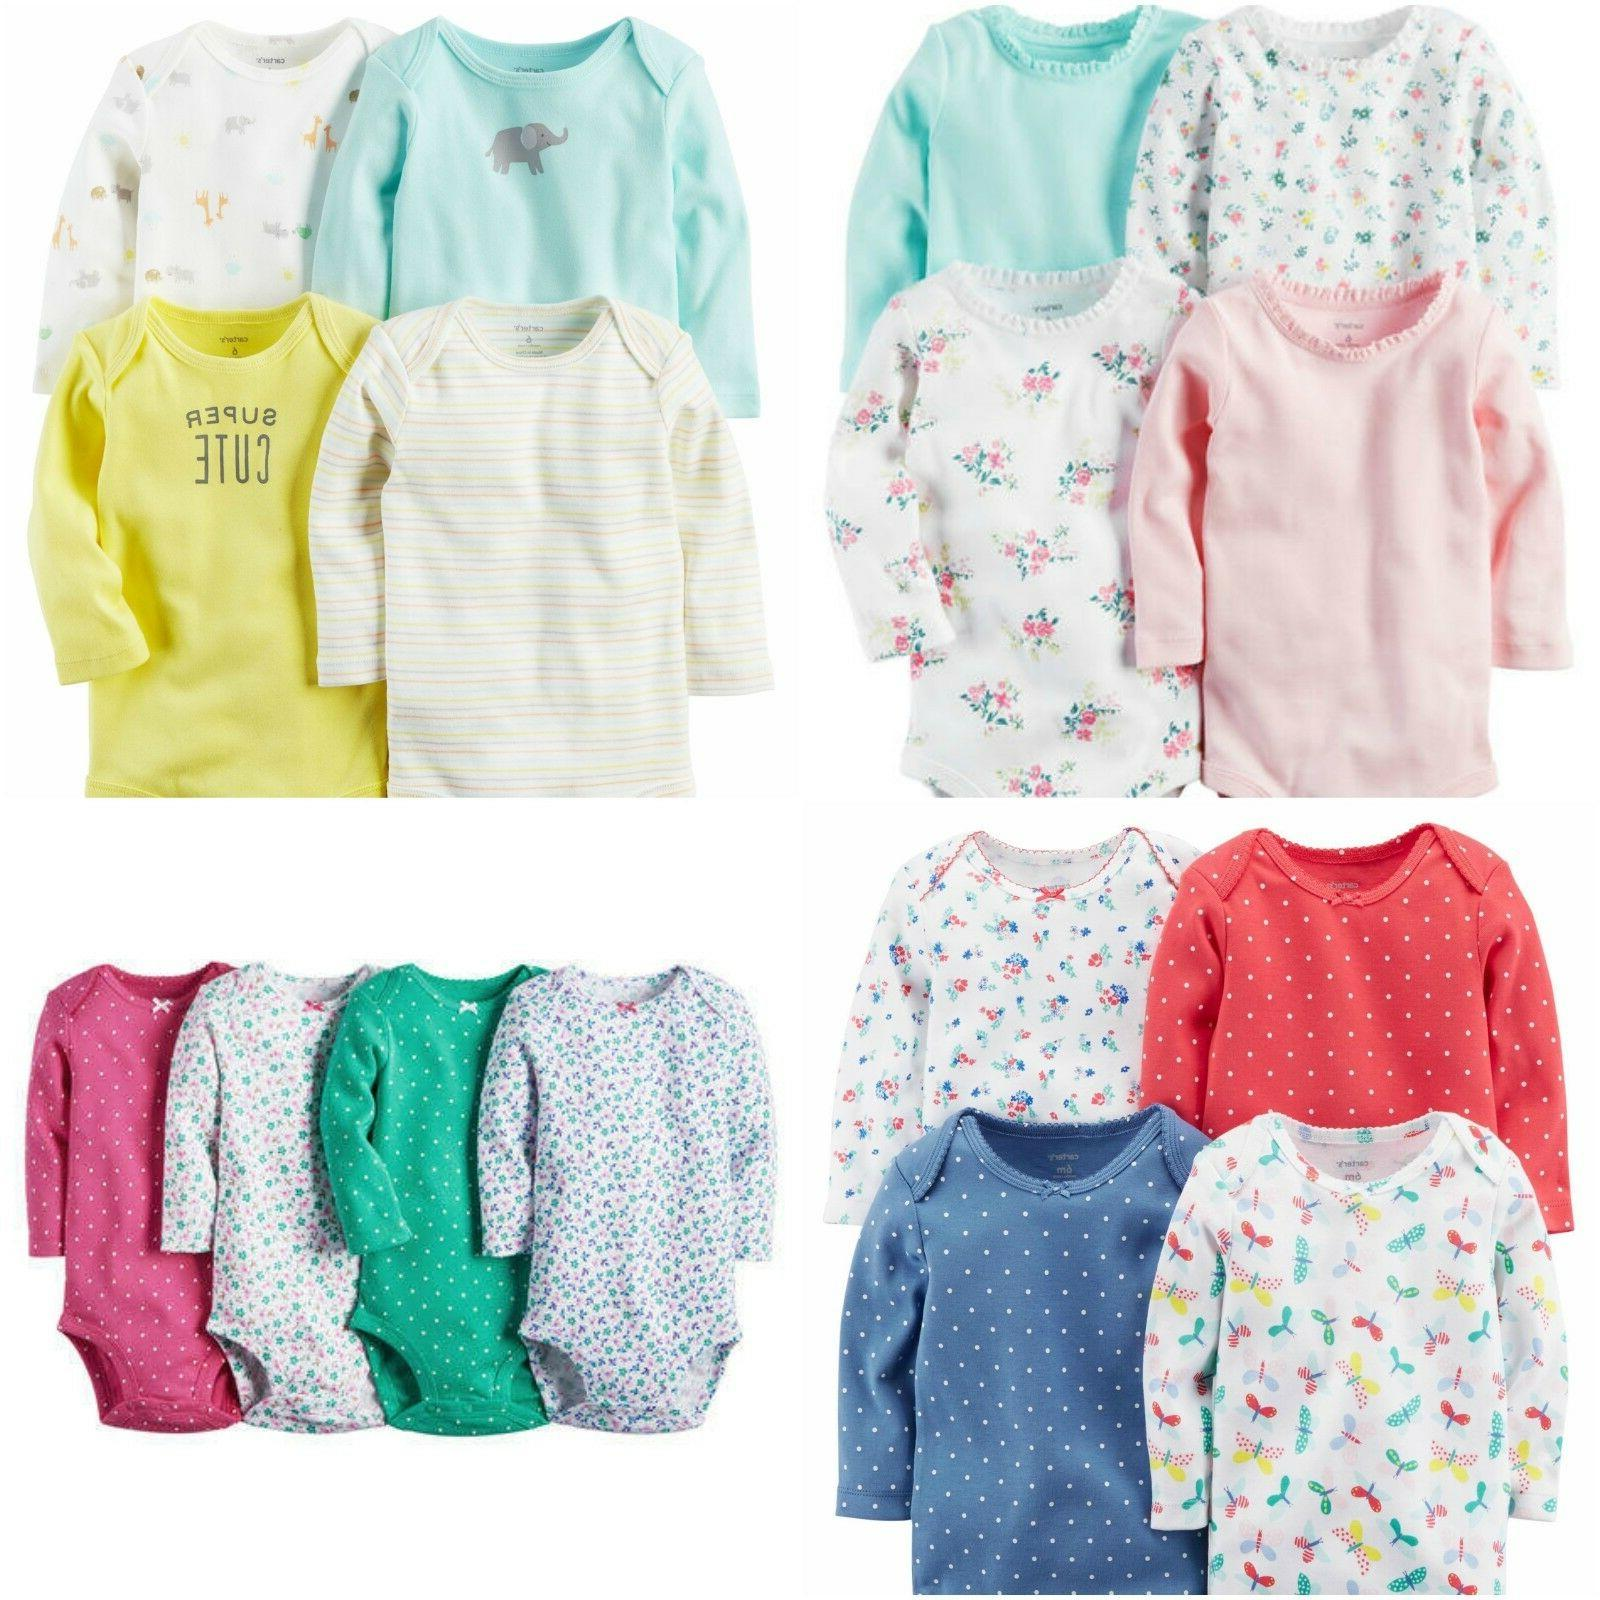 NWT Carter's 4 or 5-Pack Baby Girl Bodysuits Set